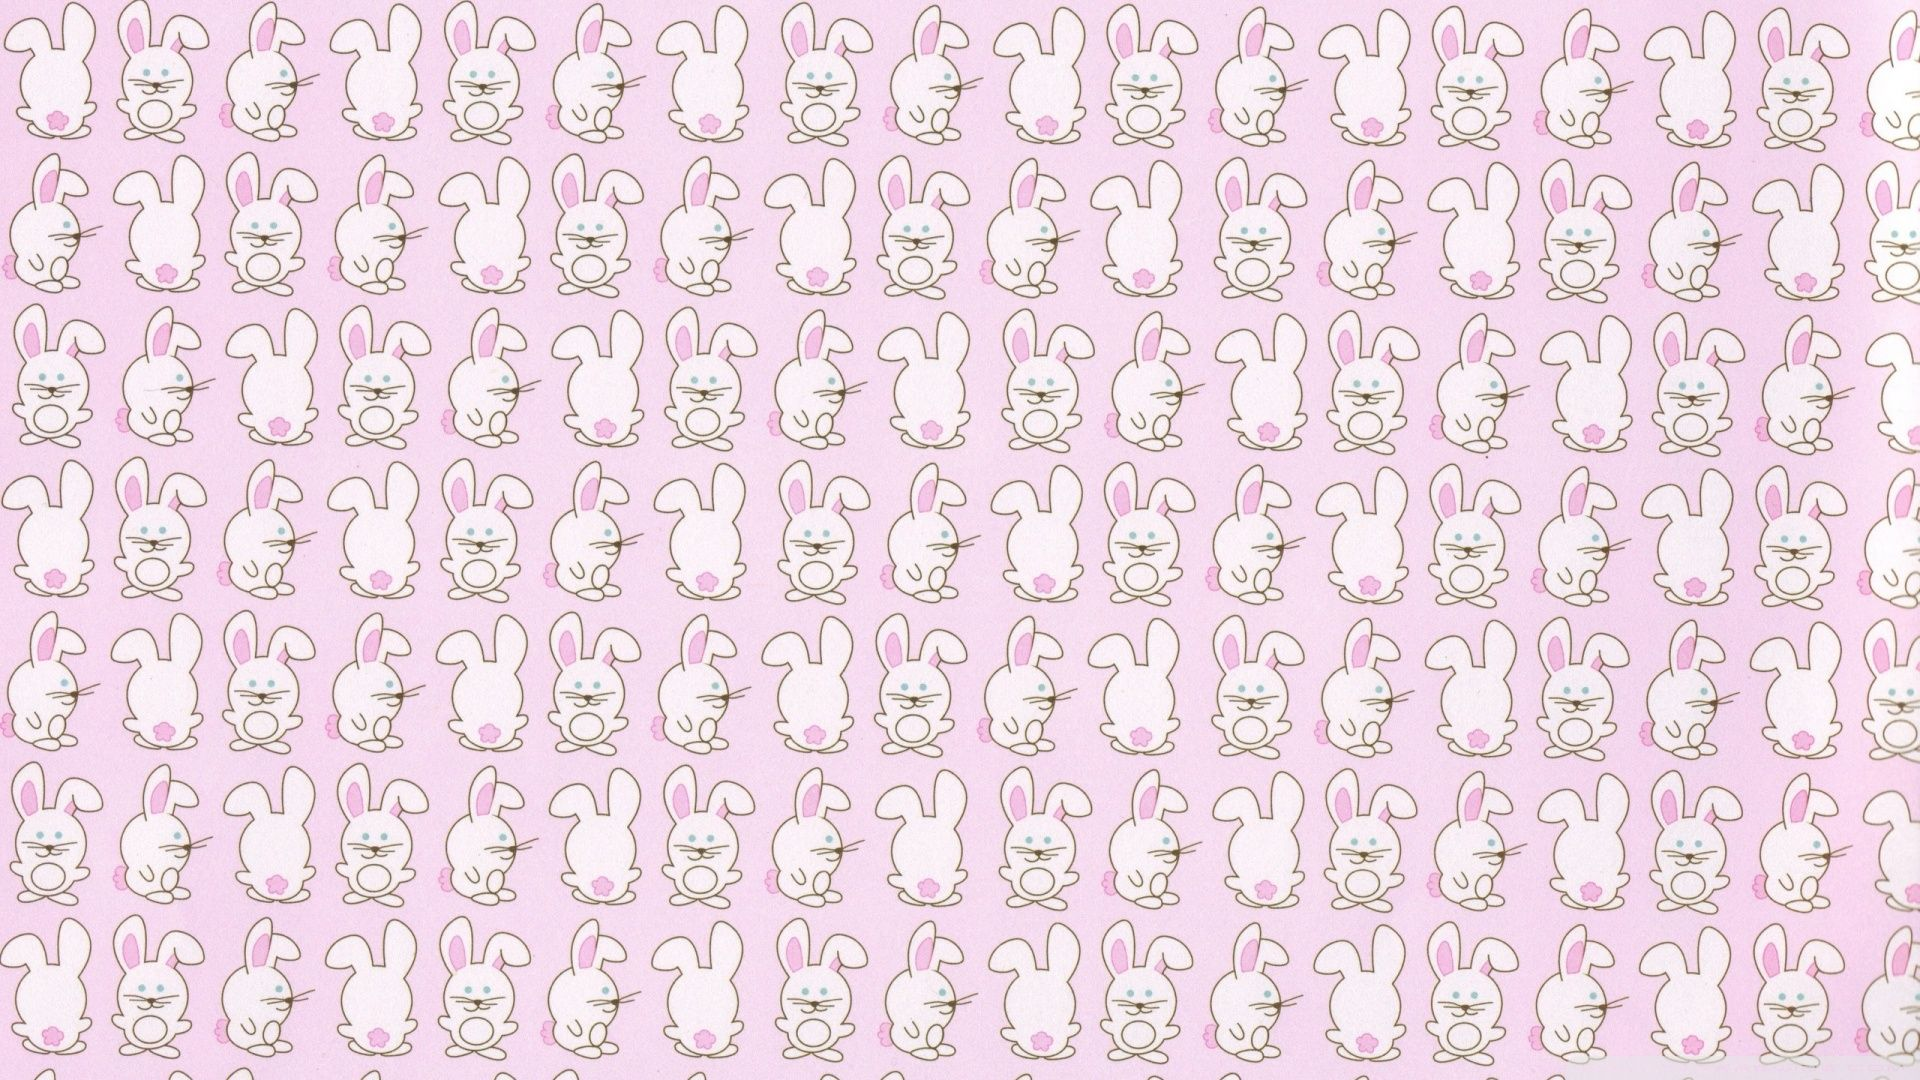 Cute Anime Bunnies Wallpaper